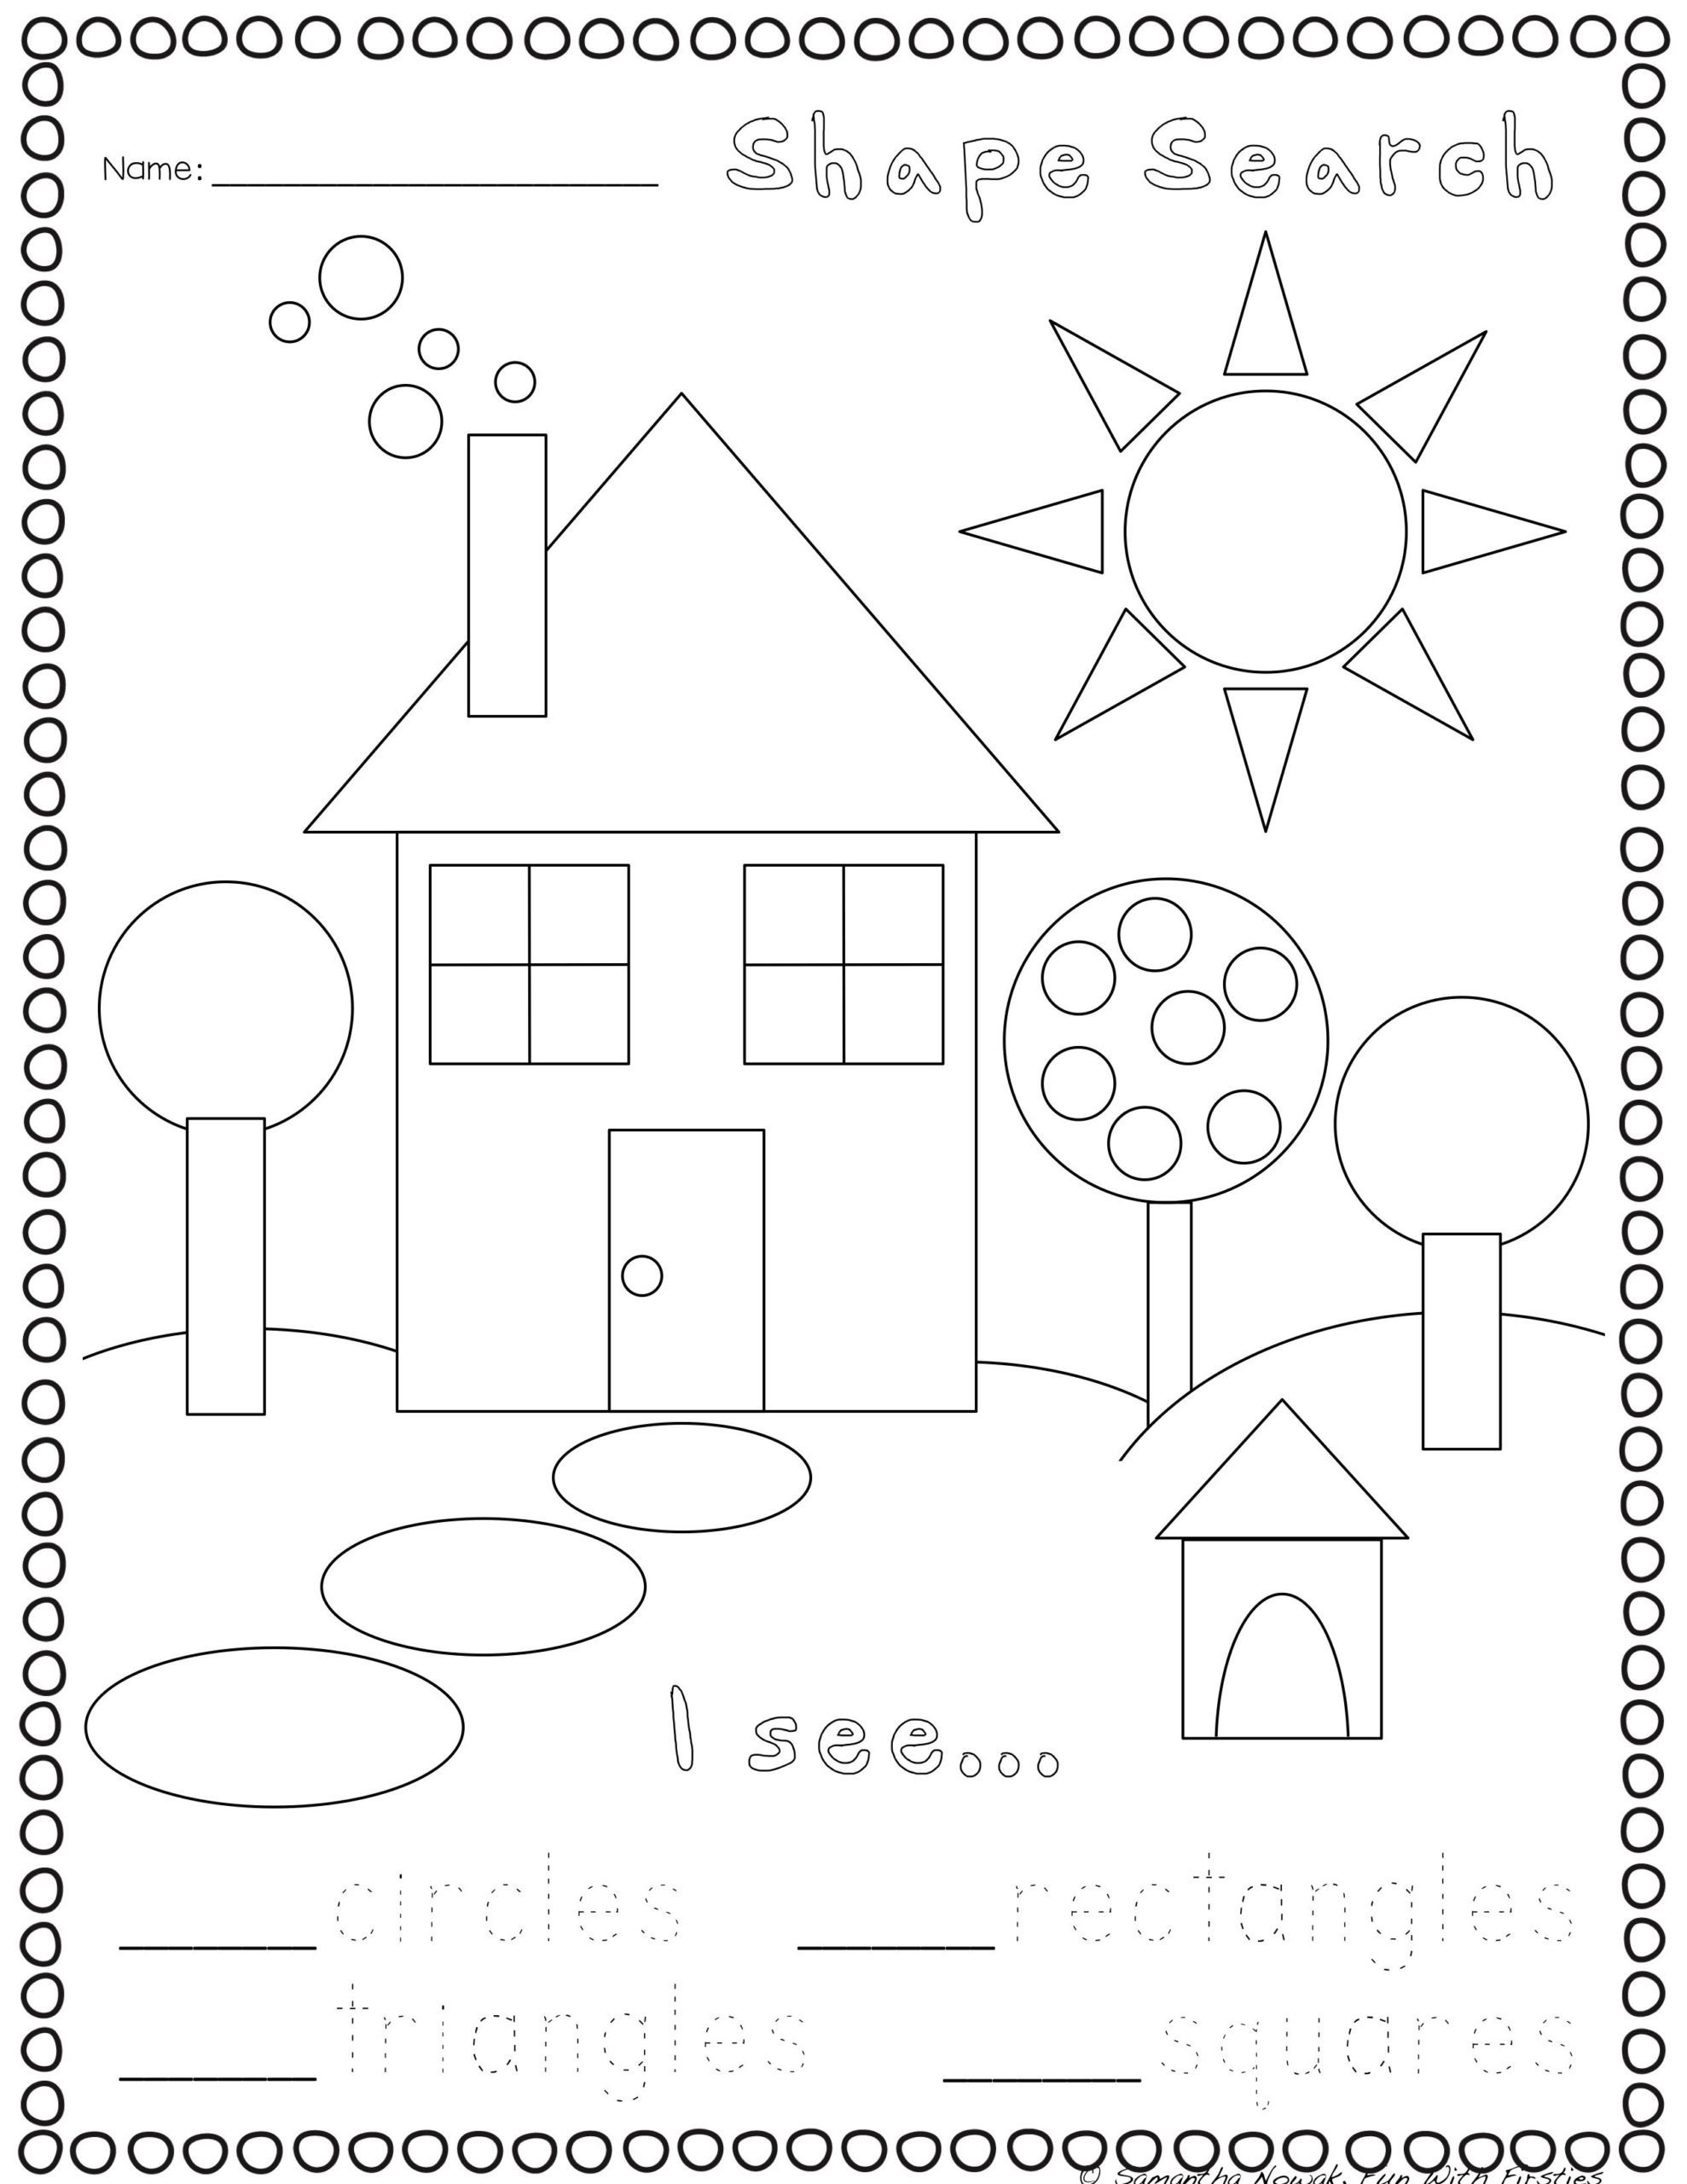 Geometric Shape Patterns Worksheet Print Go Geometry Practice Worksheets Shapes Number and